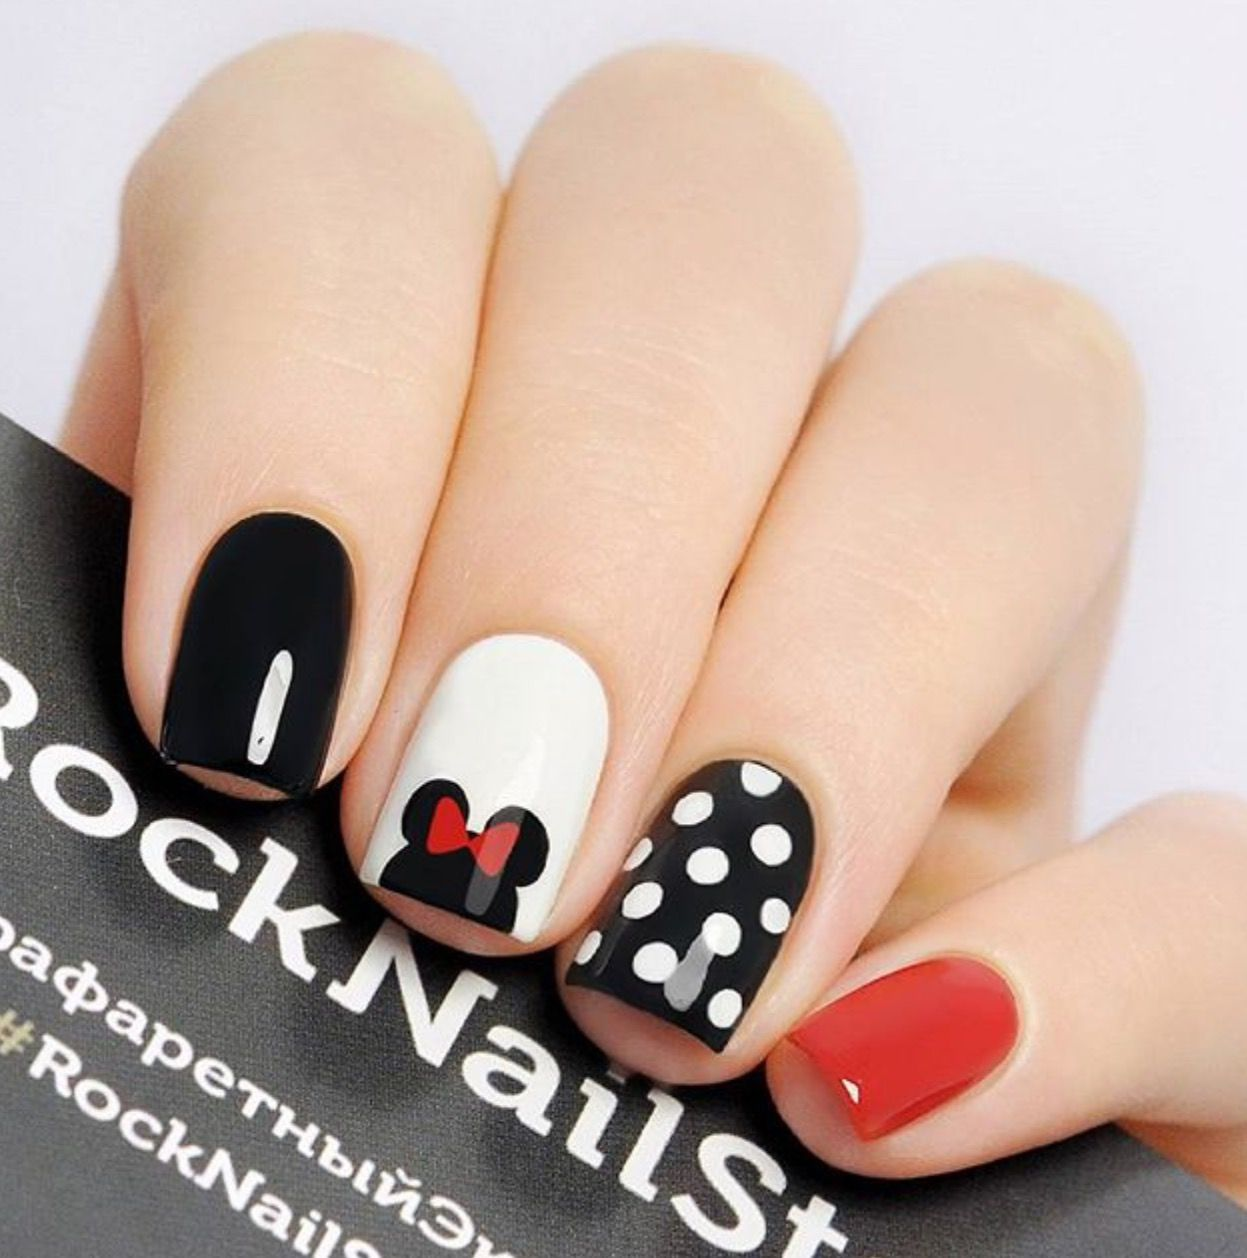 Pin de Manisha M. en Nailed It ! | Pinterest | Diseños de uñas ...